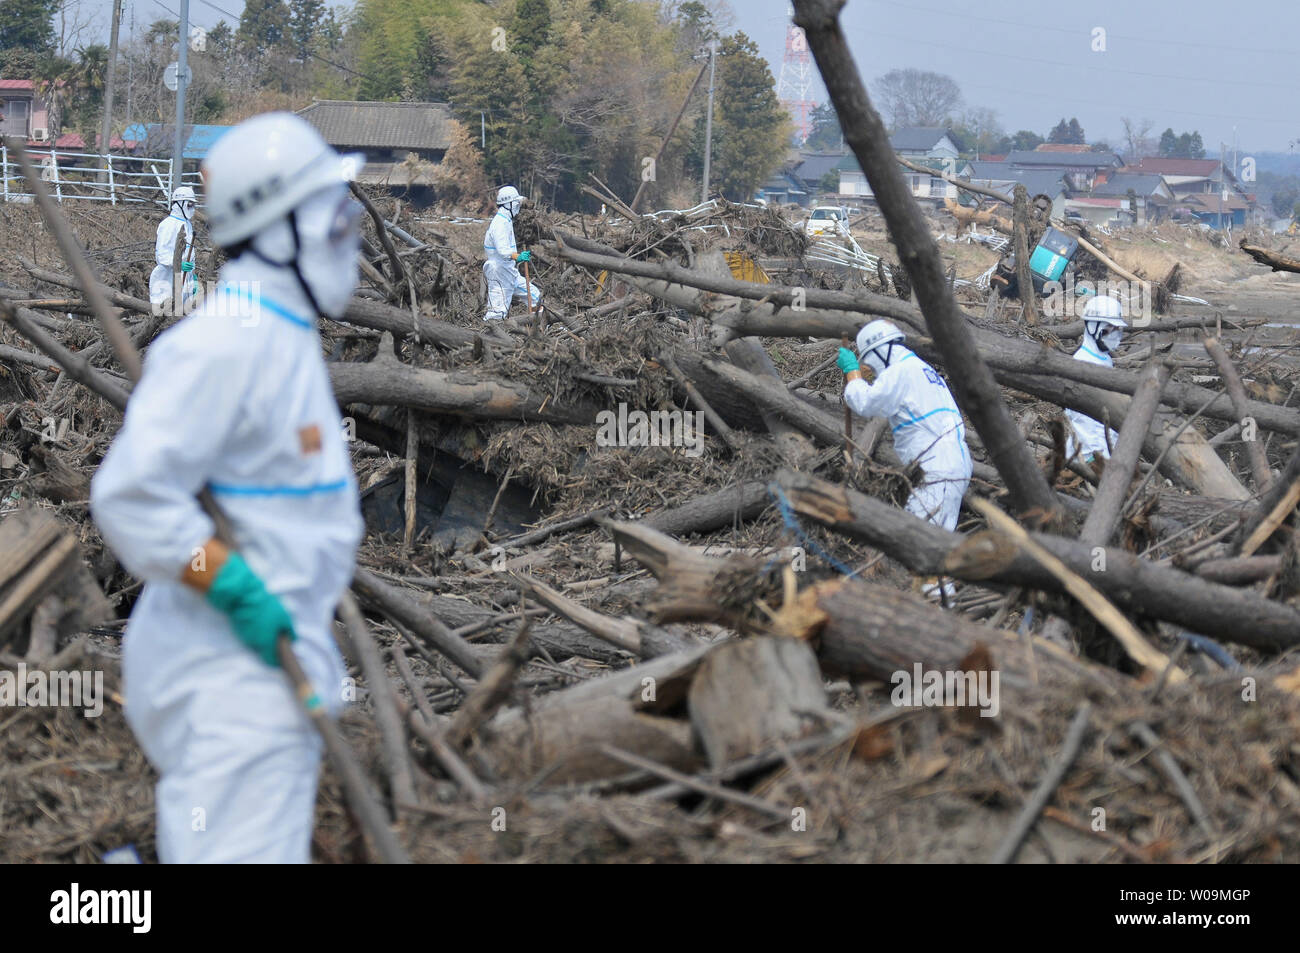 Japanese police wearing chemical protection suits search for victims inside the 20 kilometer radius around the Fukushima Dai-ichi nuclear power plant in Minamisoma, Fukushima prefecture, Japan, on April 15, 2011. A massive earthquake and ensuing tsunami on March 11 destroyed homes, killed thousands and caused a nuclear disaster.    UPI/Keizo Mori - Stock Image